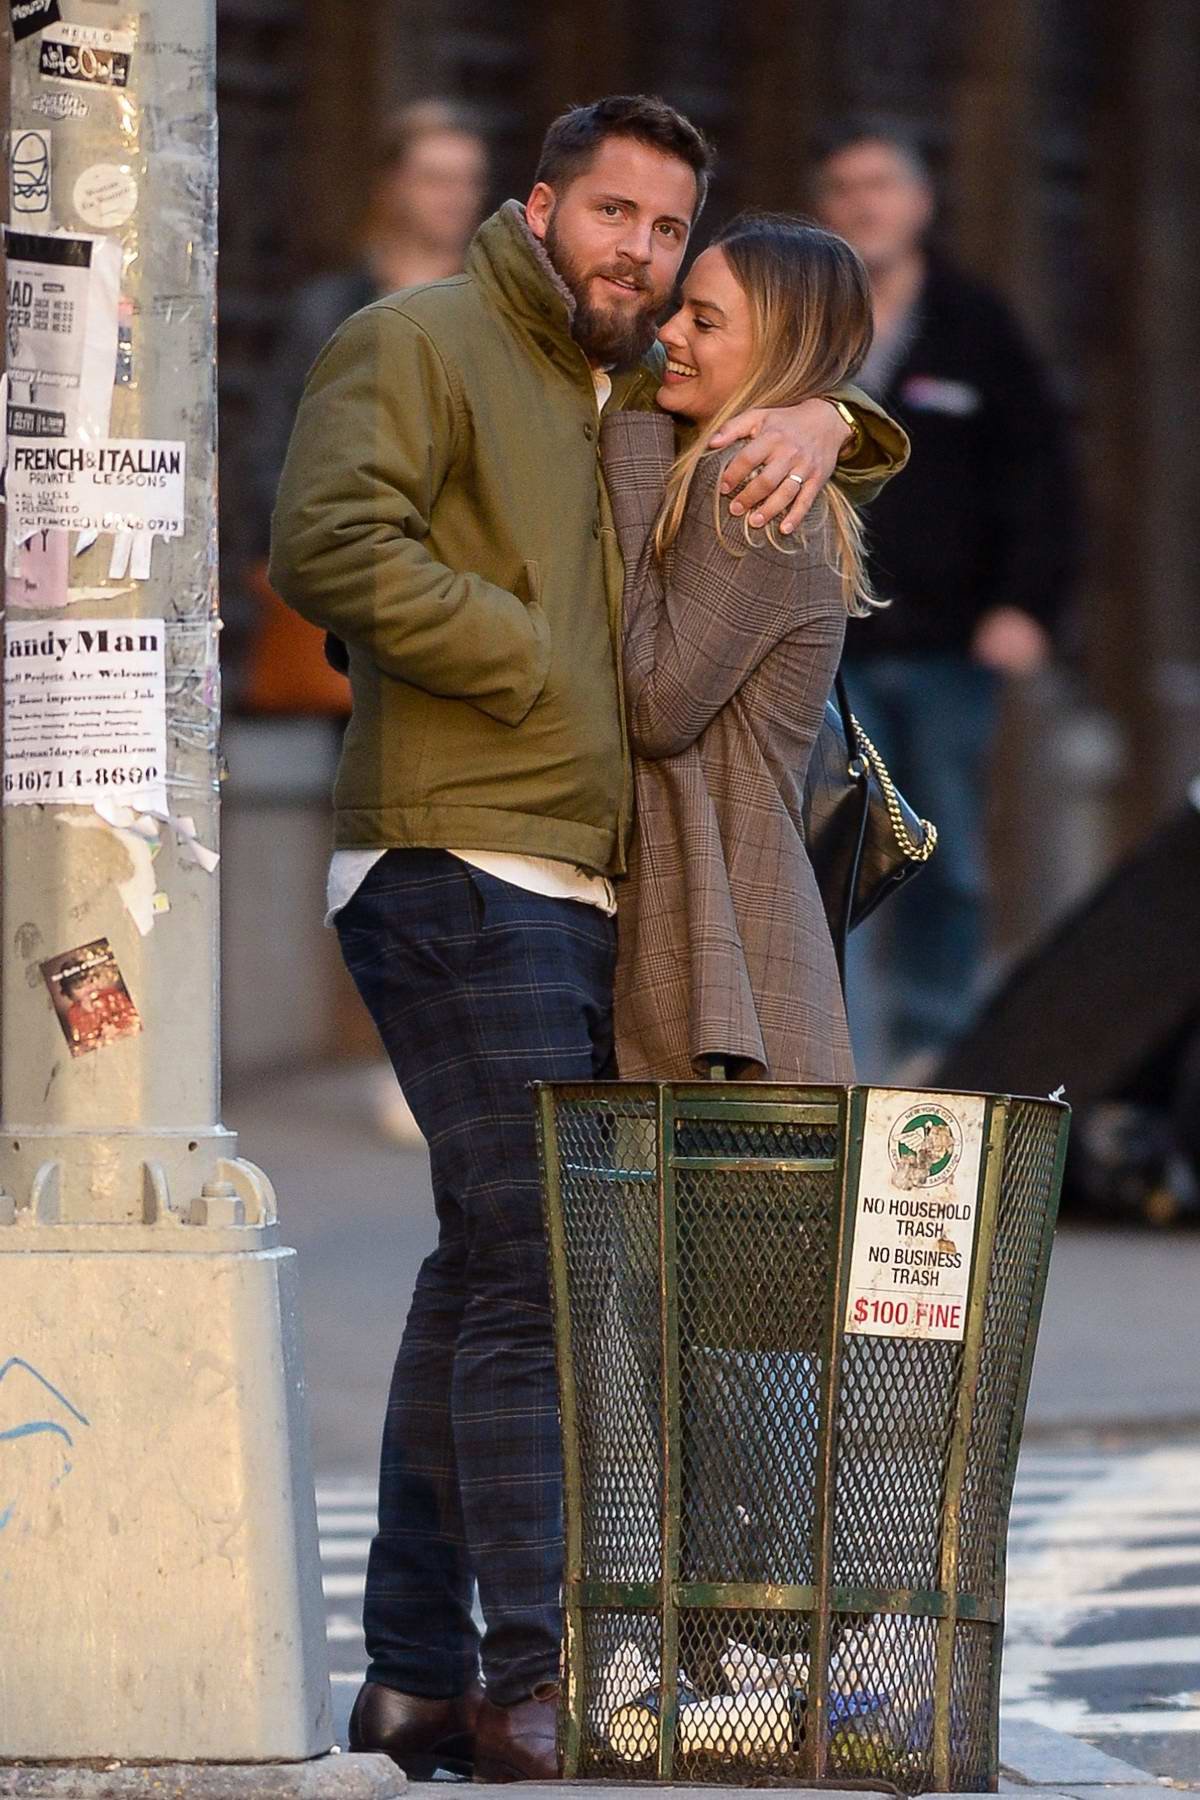 Margot Robbie and Tom Ackerley cuddle up to each other during an outing in New York City